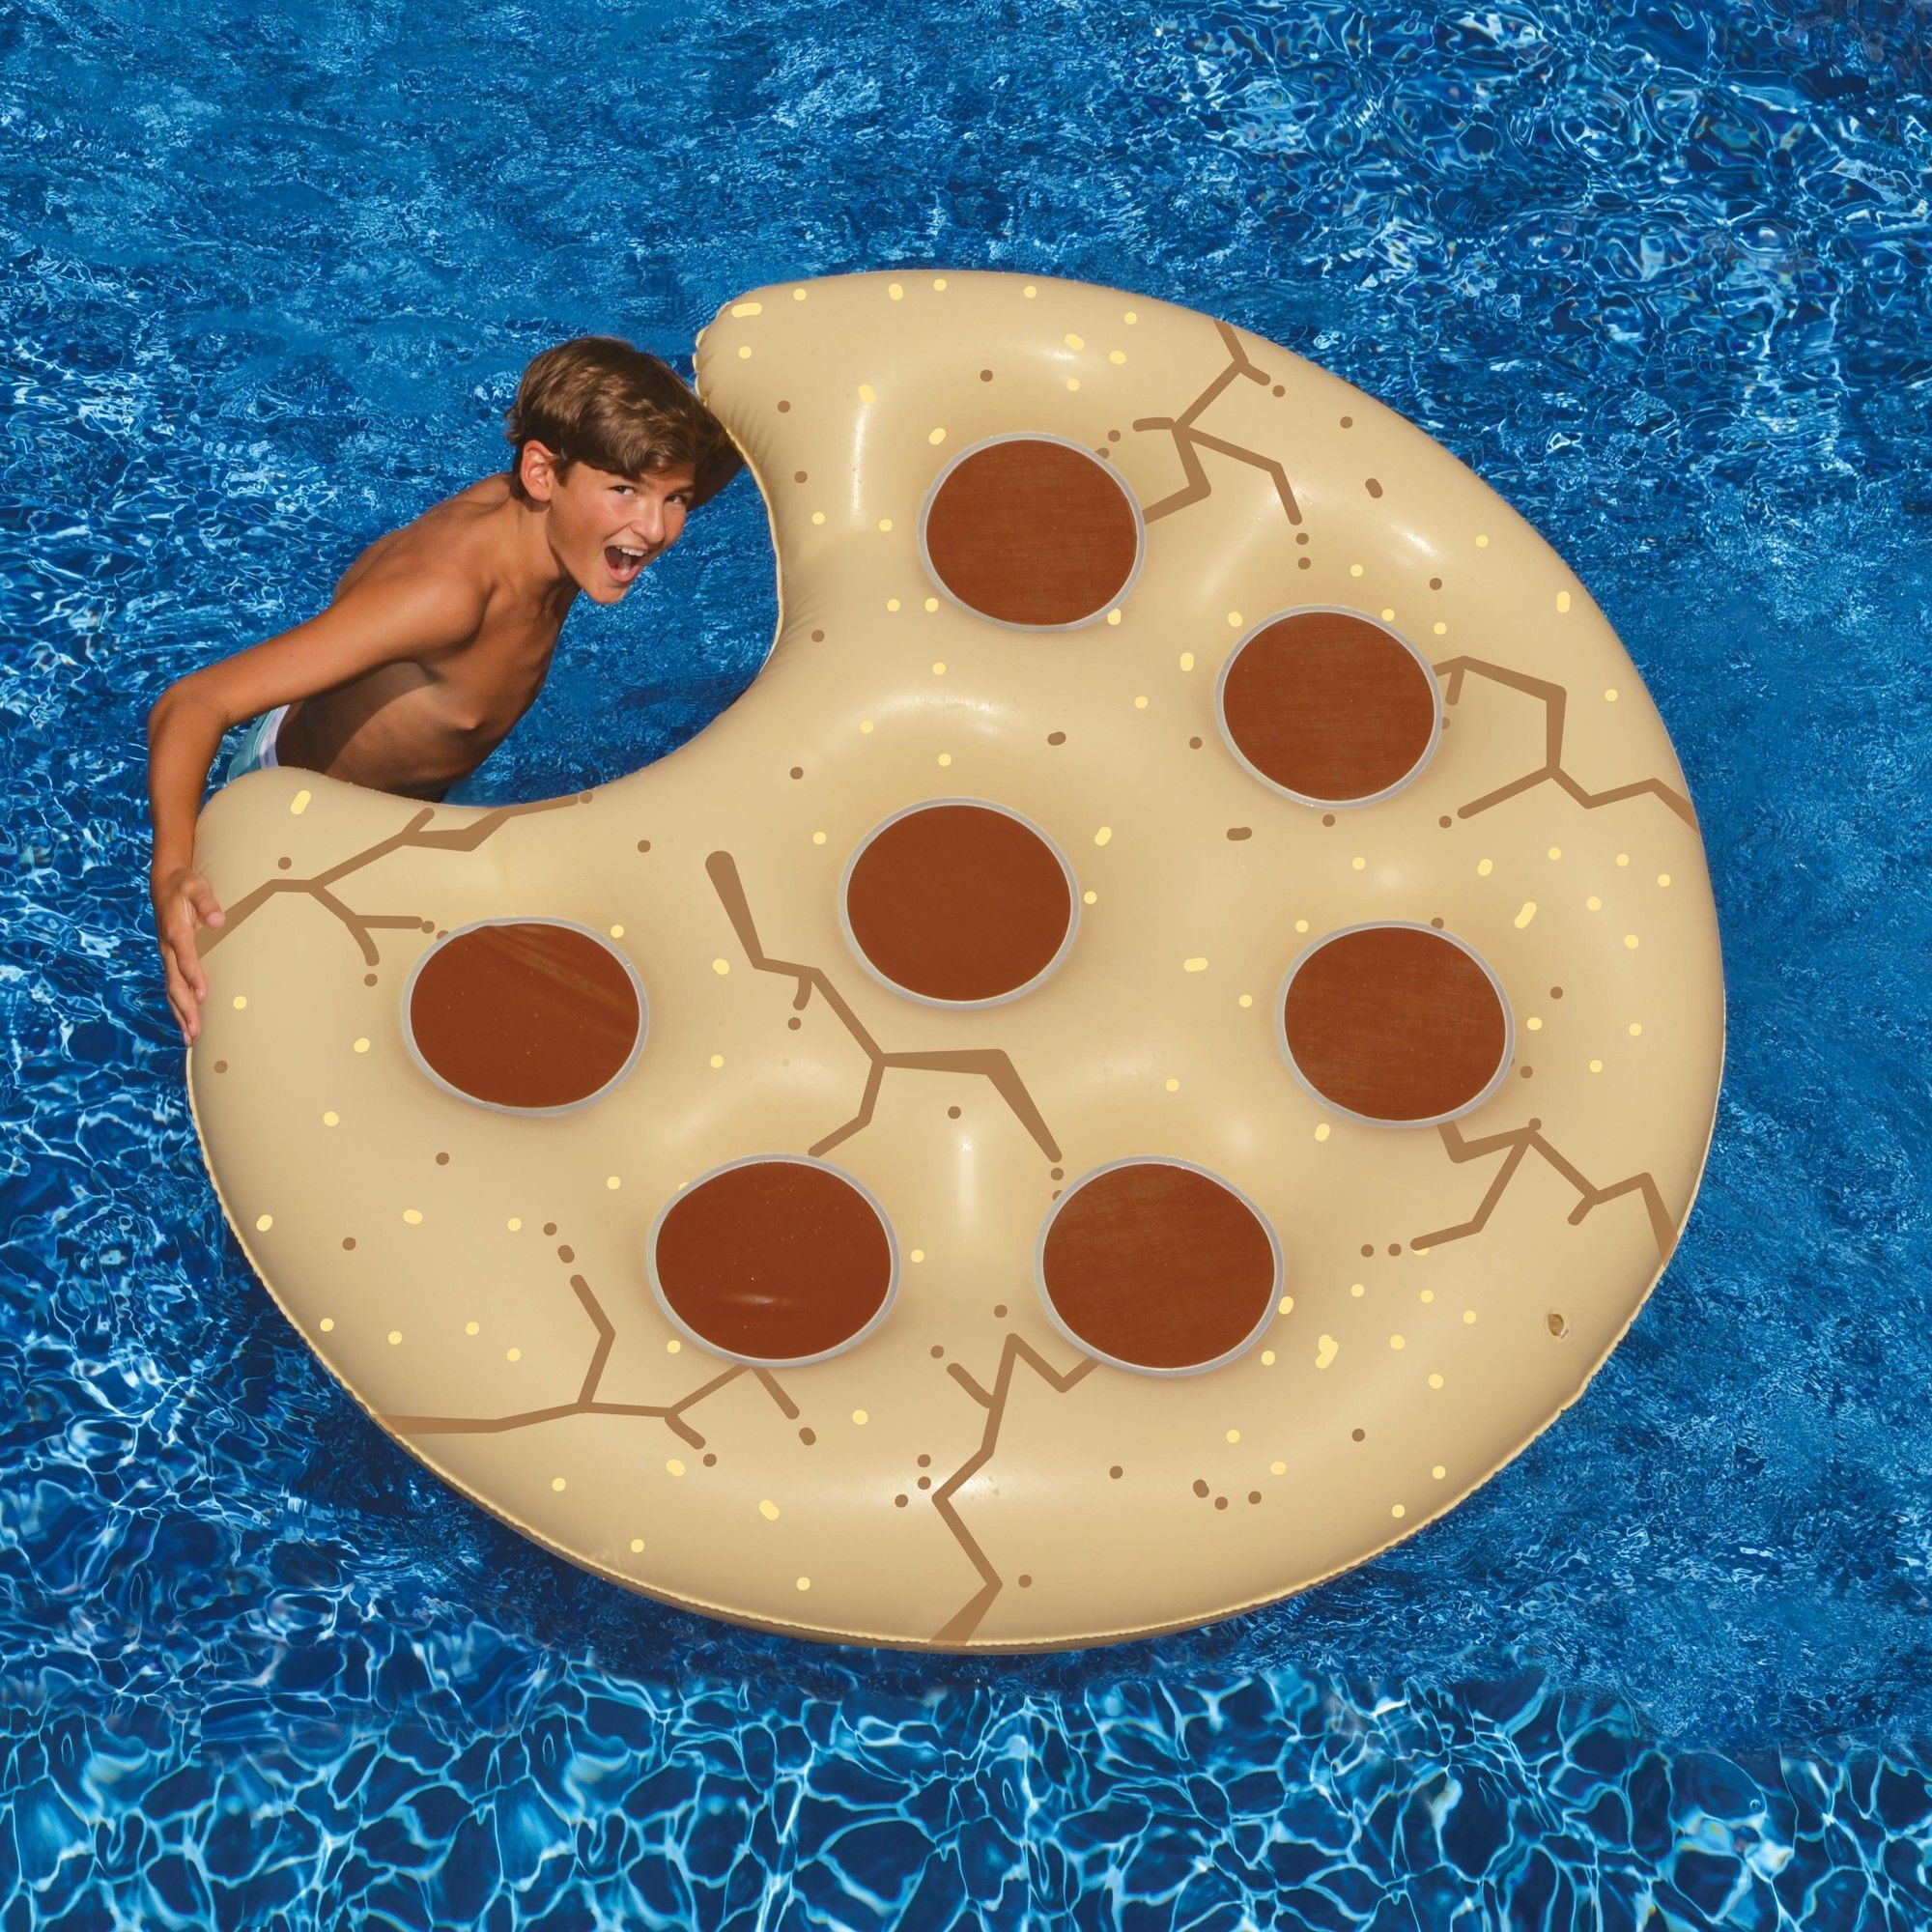 Cookie Pool Float Fun Inflatable Camping Pinterest